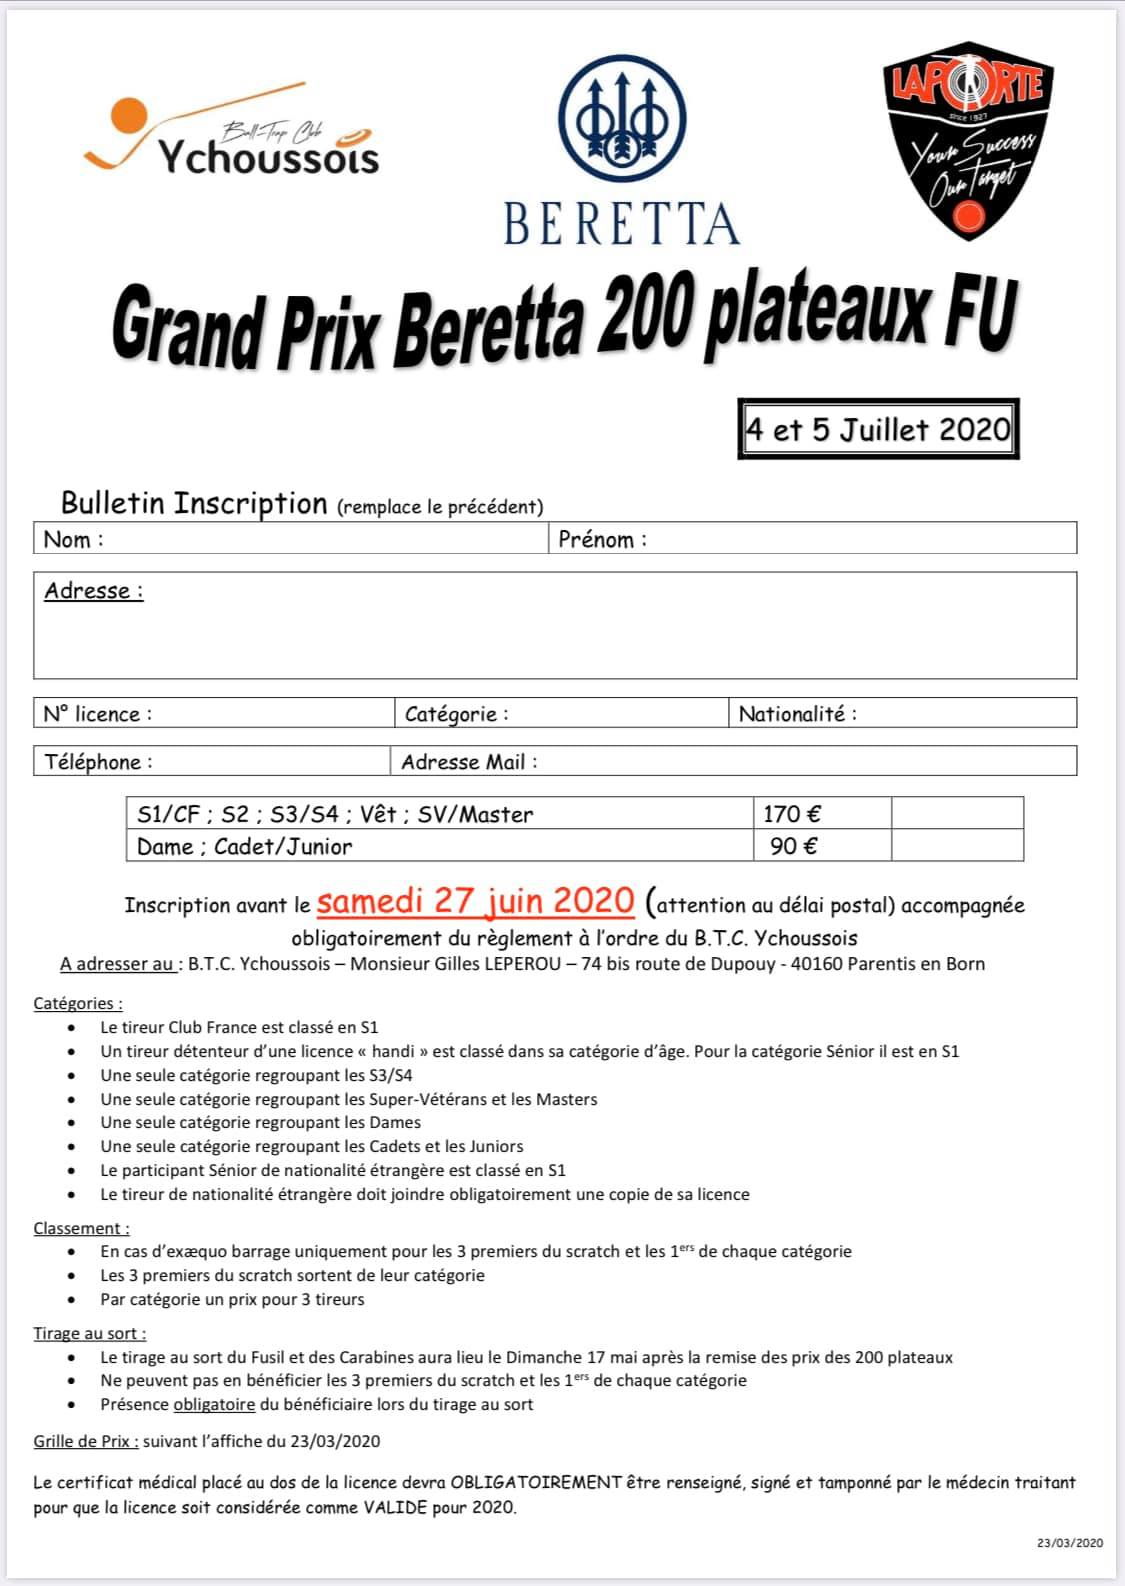 Bulletin d inscription GP Beretta 2020 V2